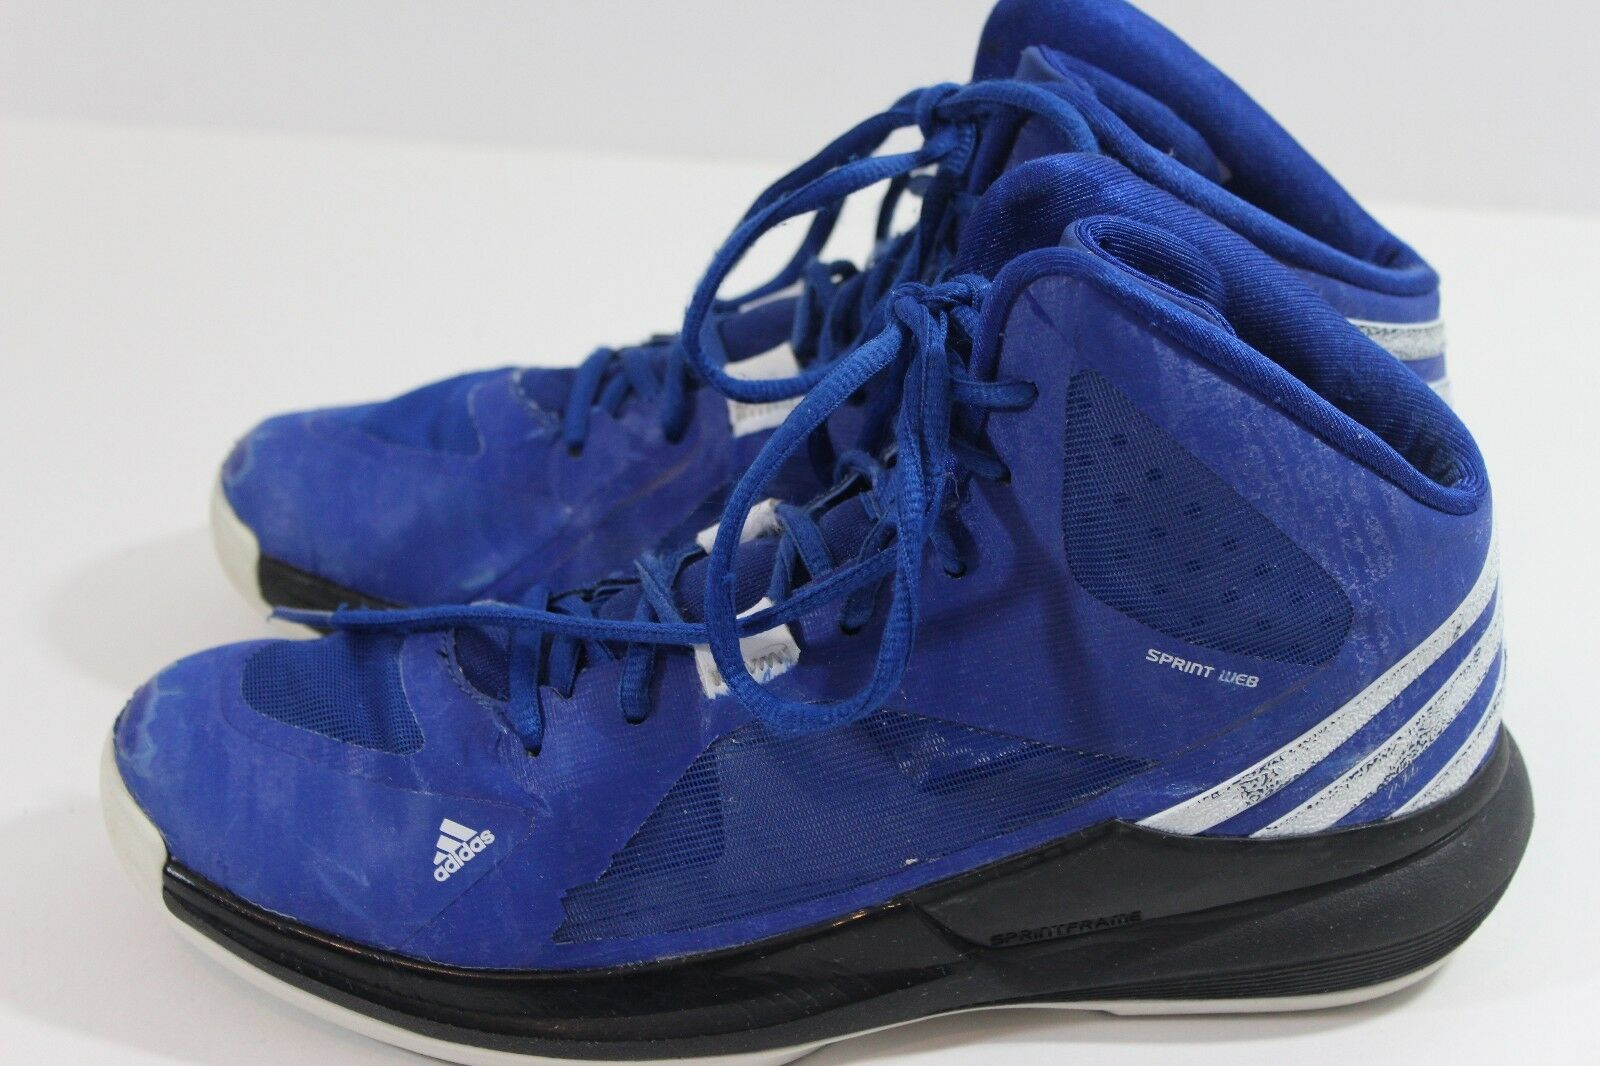 adidas Crazy Strike/Ghost Mens Basketball Comfortable The latest discount shoes for men and women